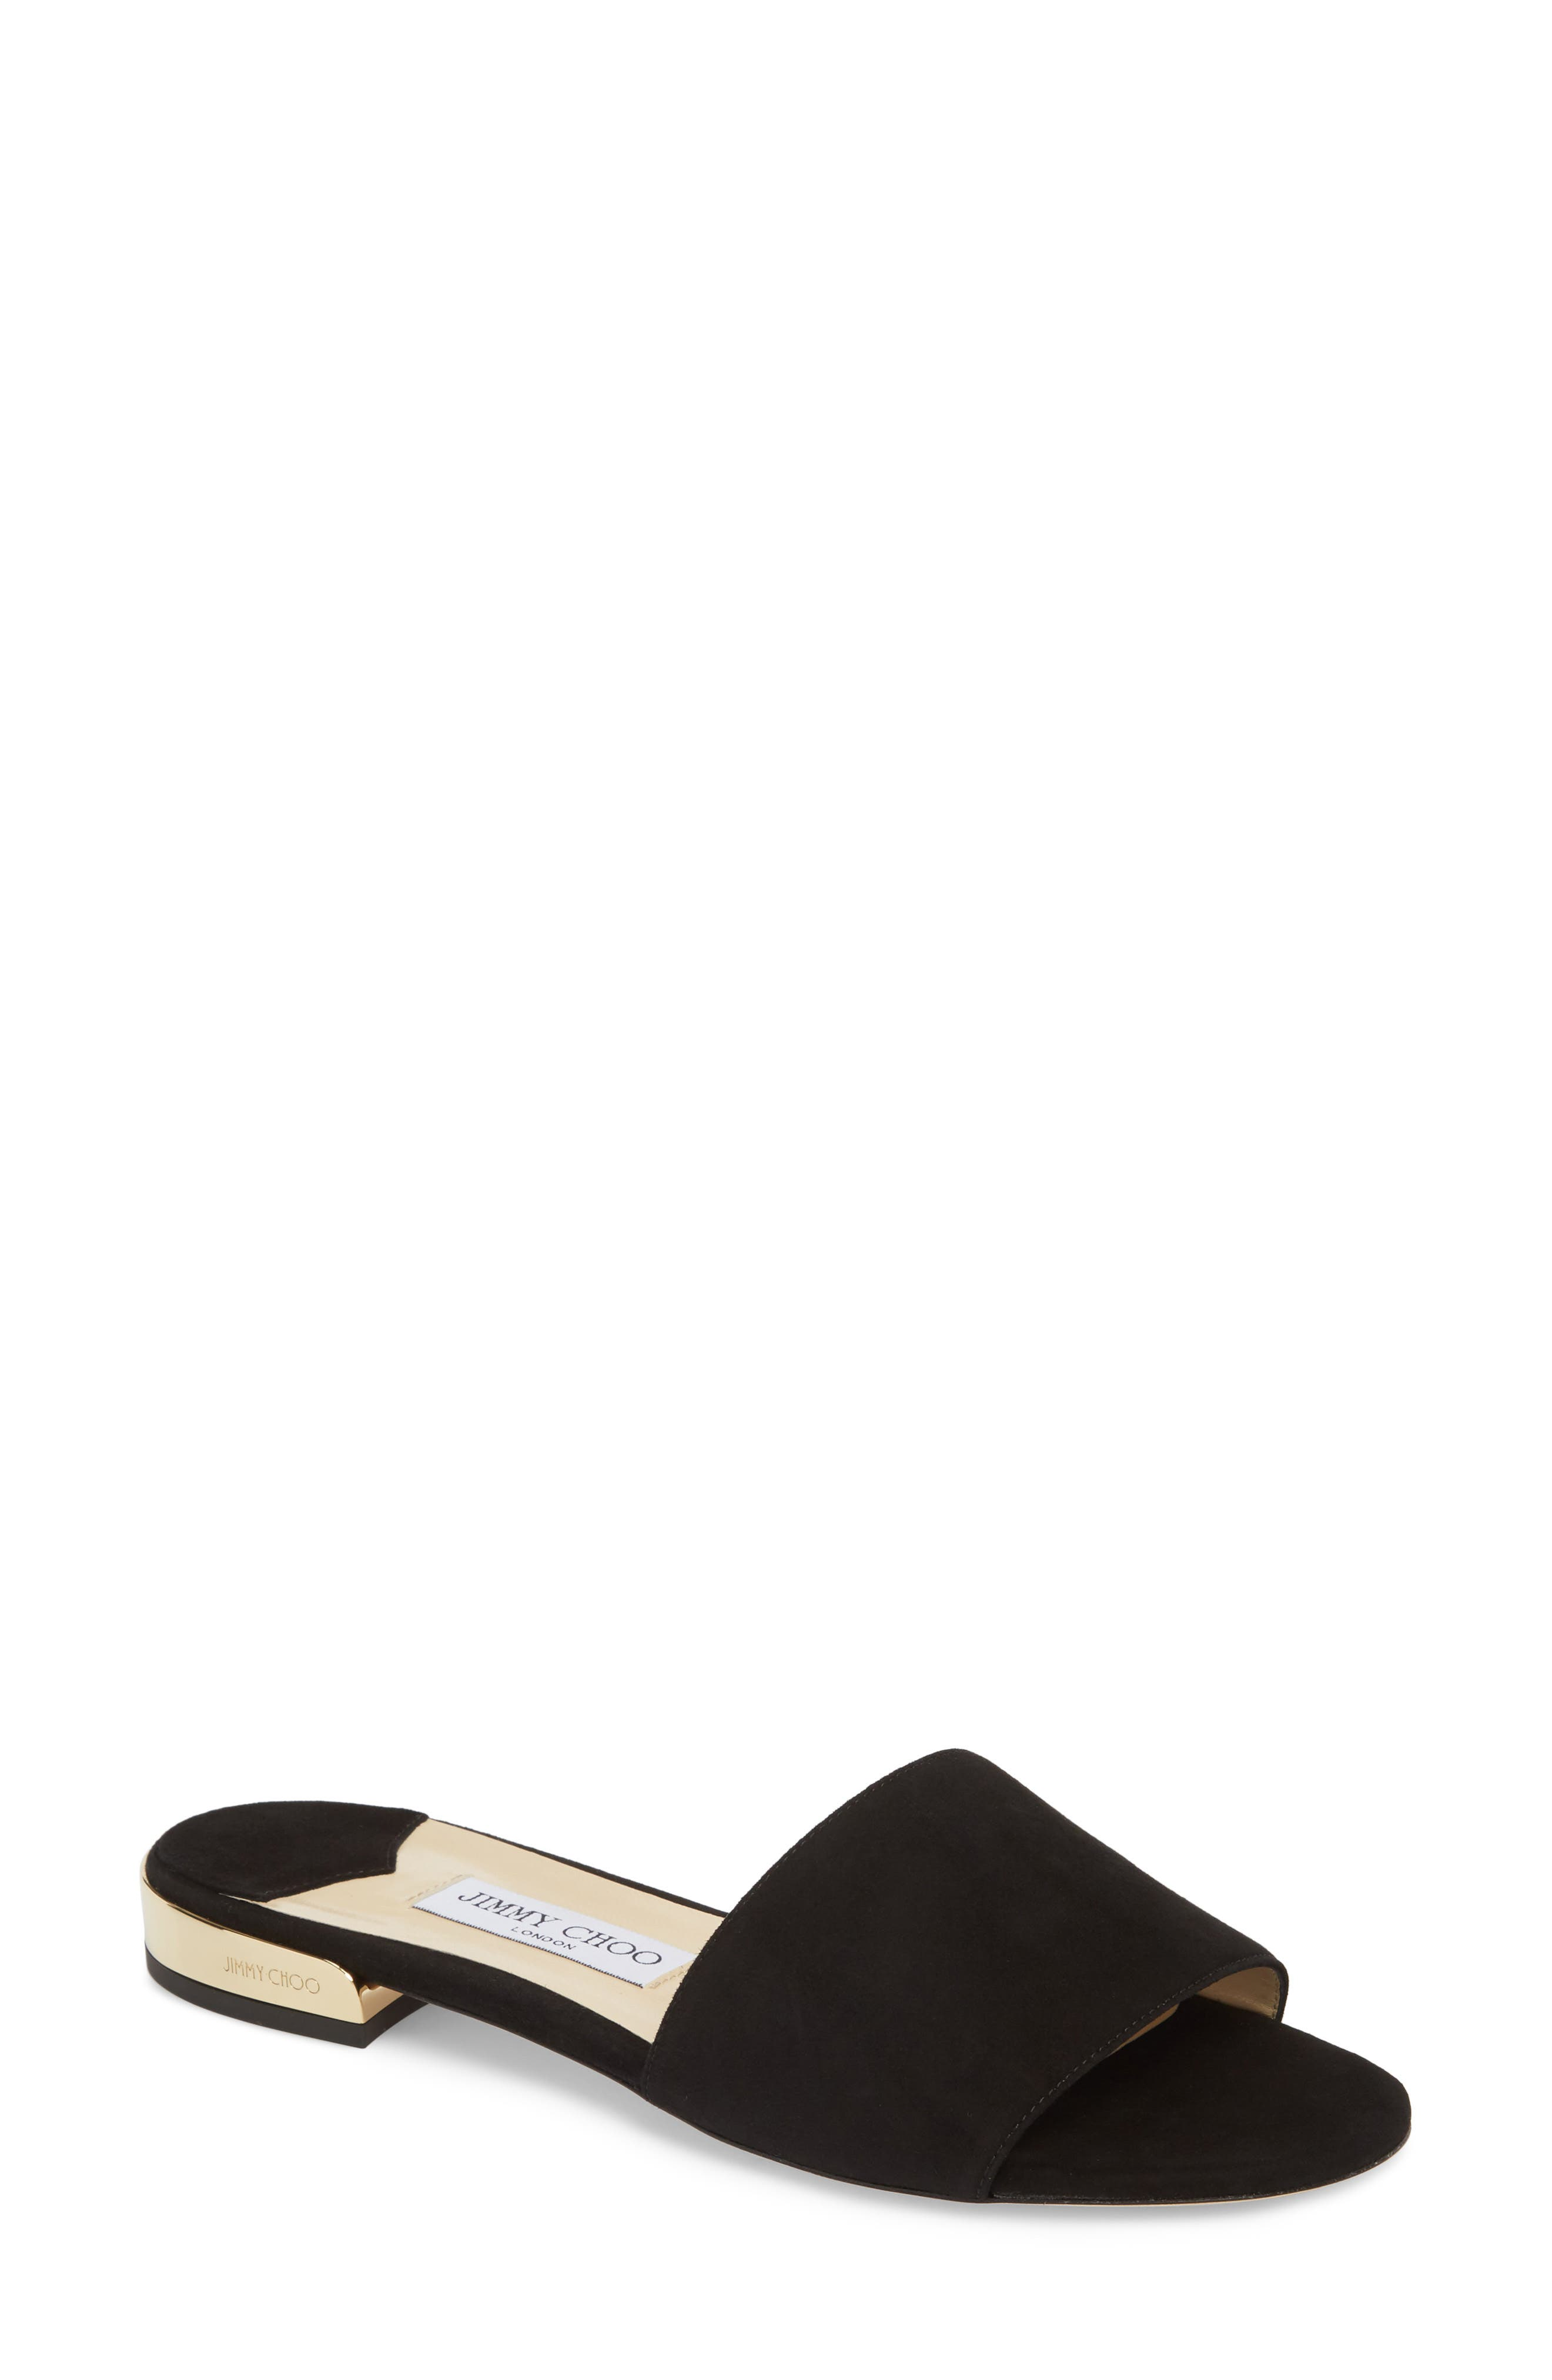 Joni Slide Sandal,                             Main thumbnail 1, color,                             BLACK